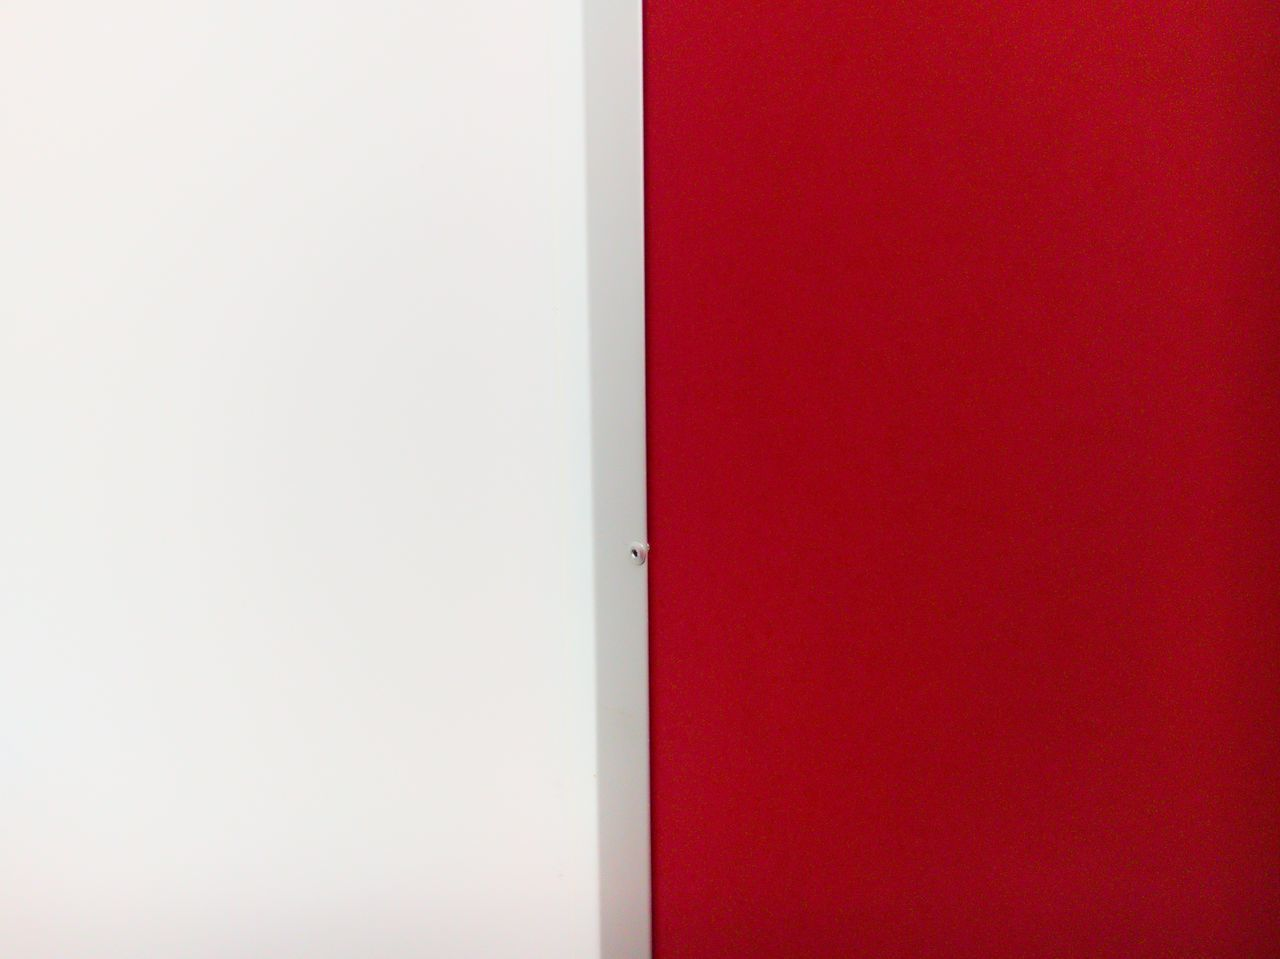 FULL FRAME SHOT OF WHITE WALL AND RED DOOR